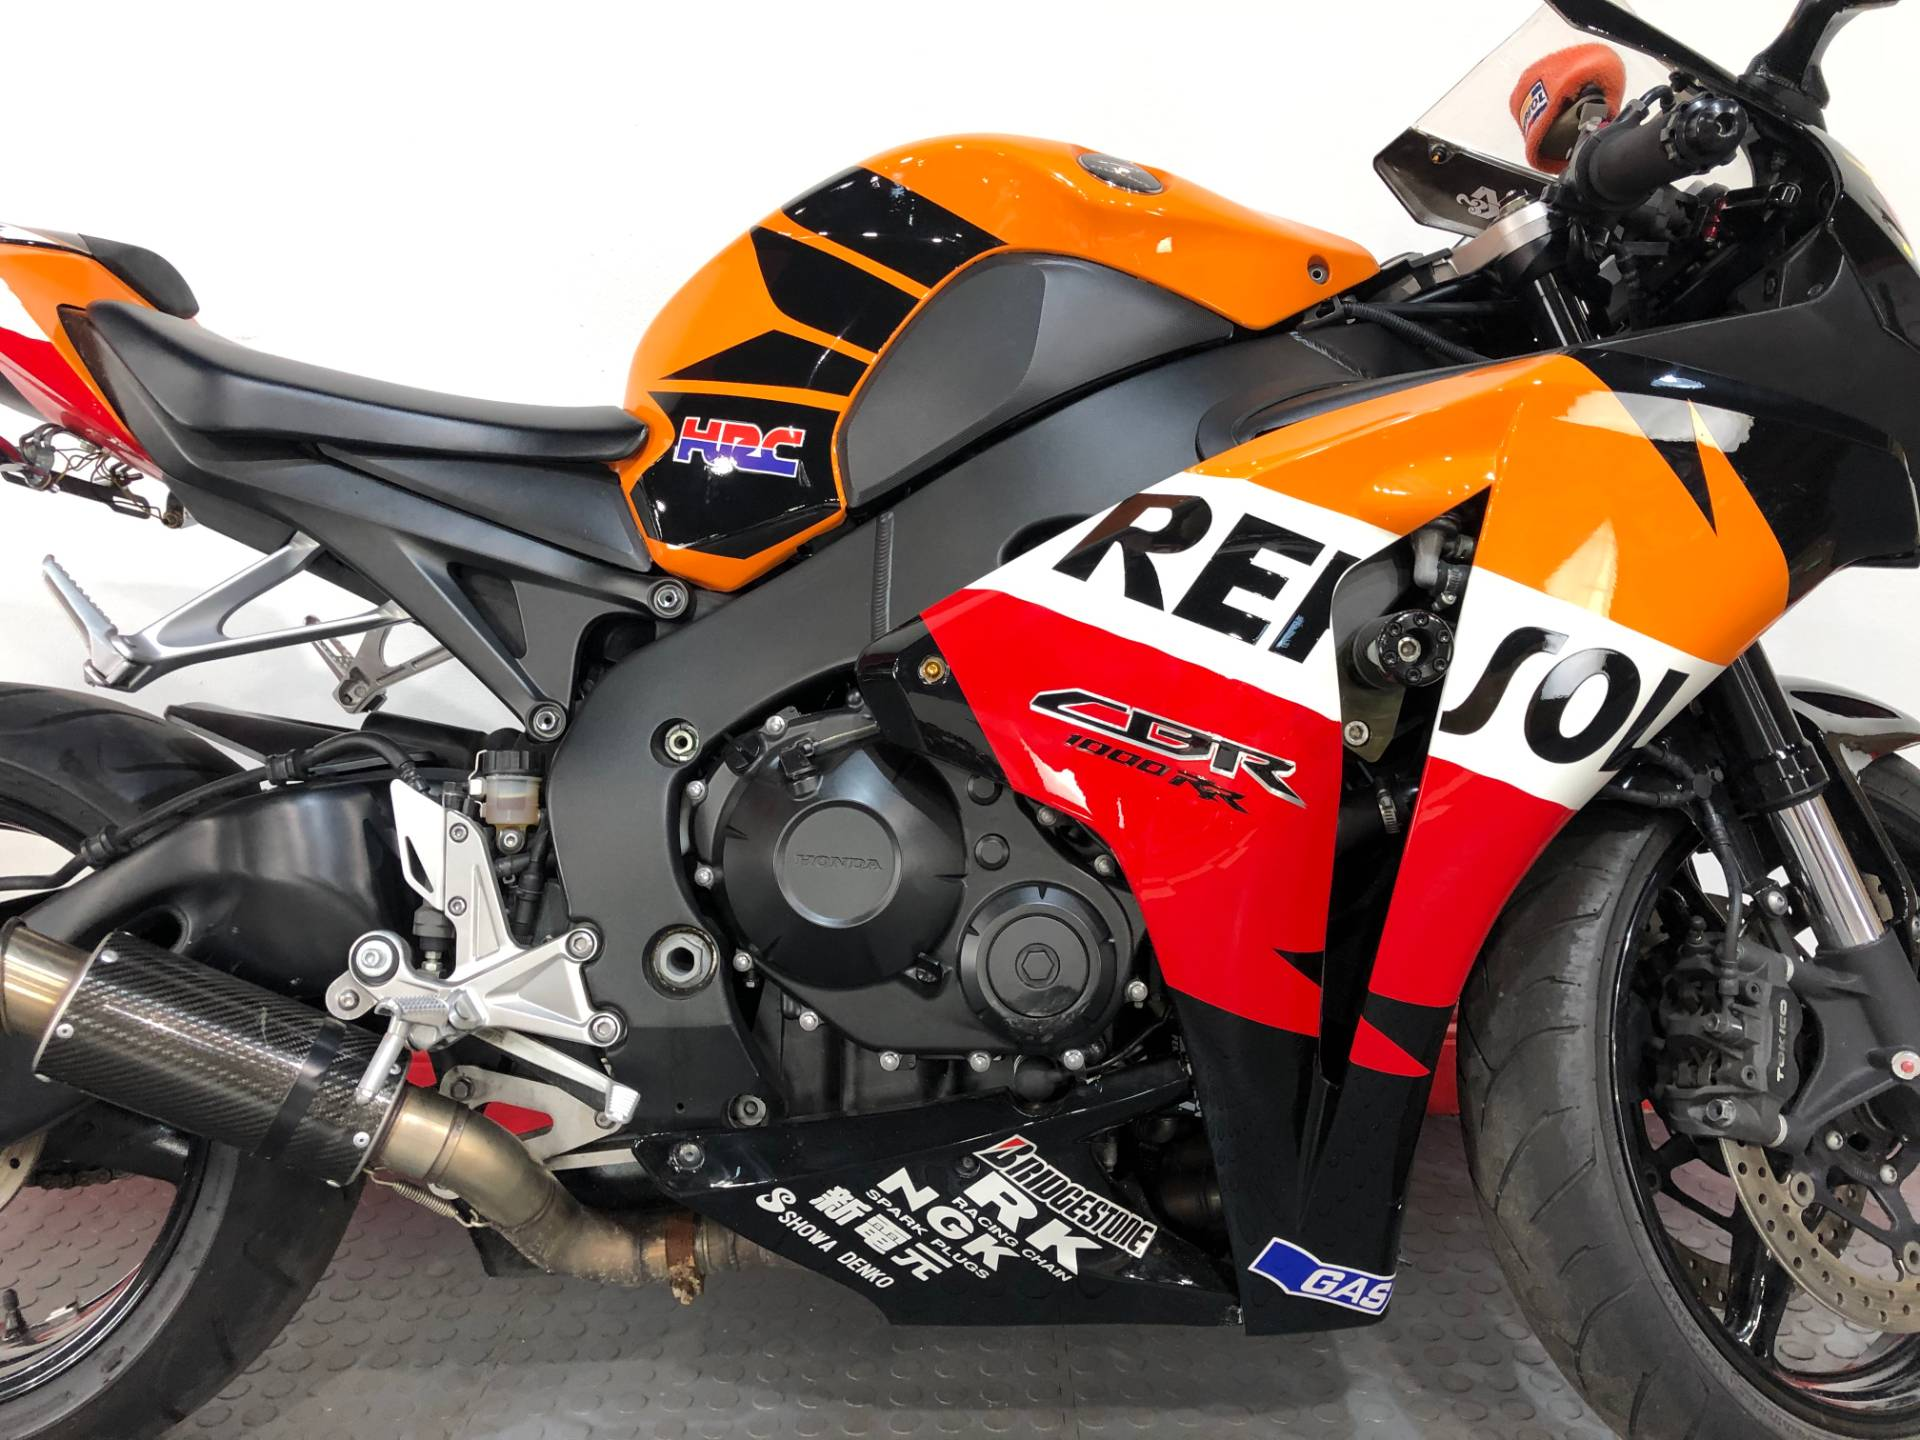 2010 Honda CBR®1000RR in Tampa, Florida - Photo 10